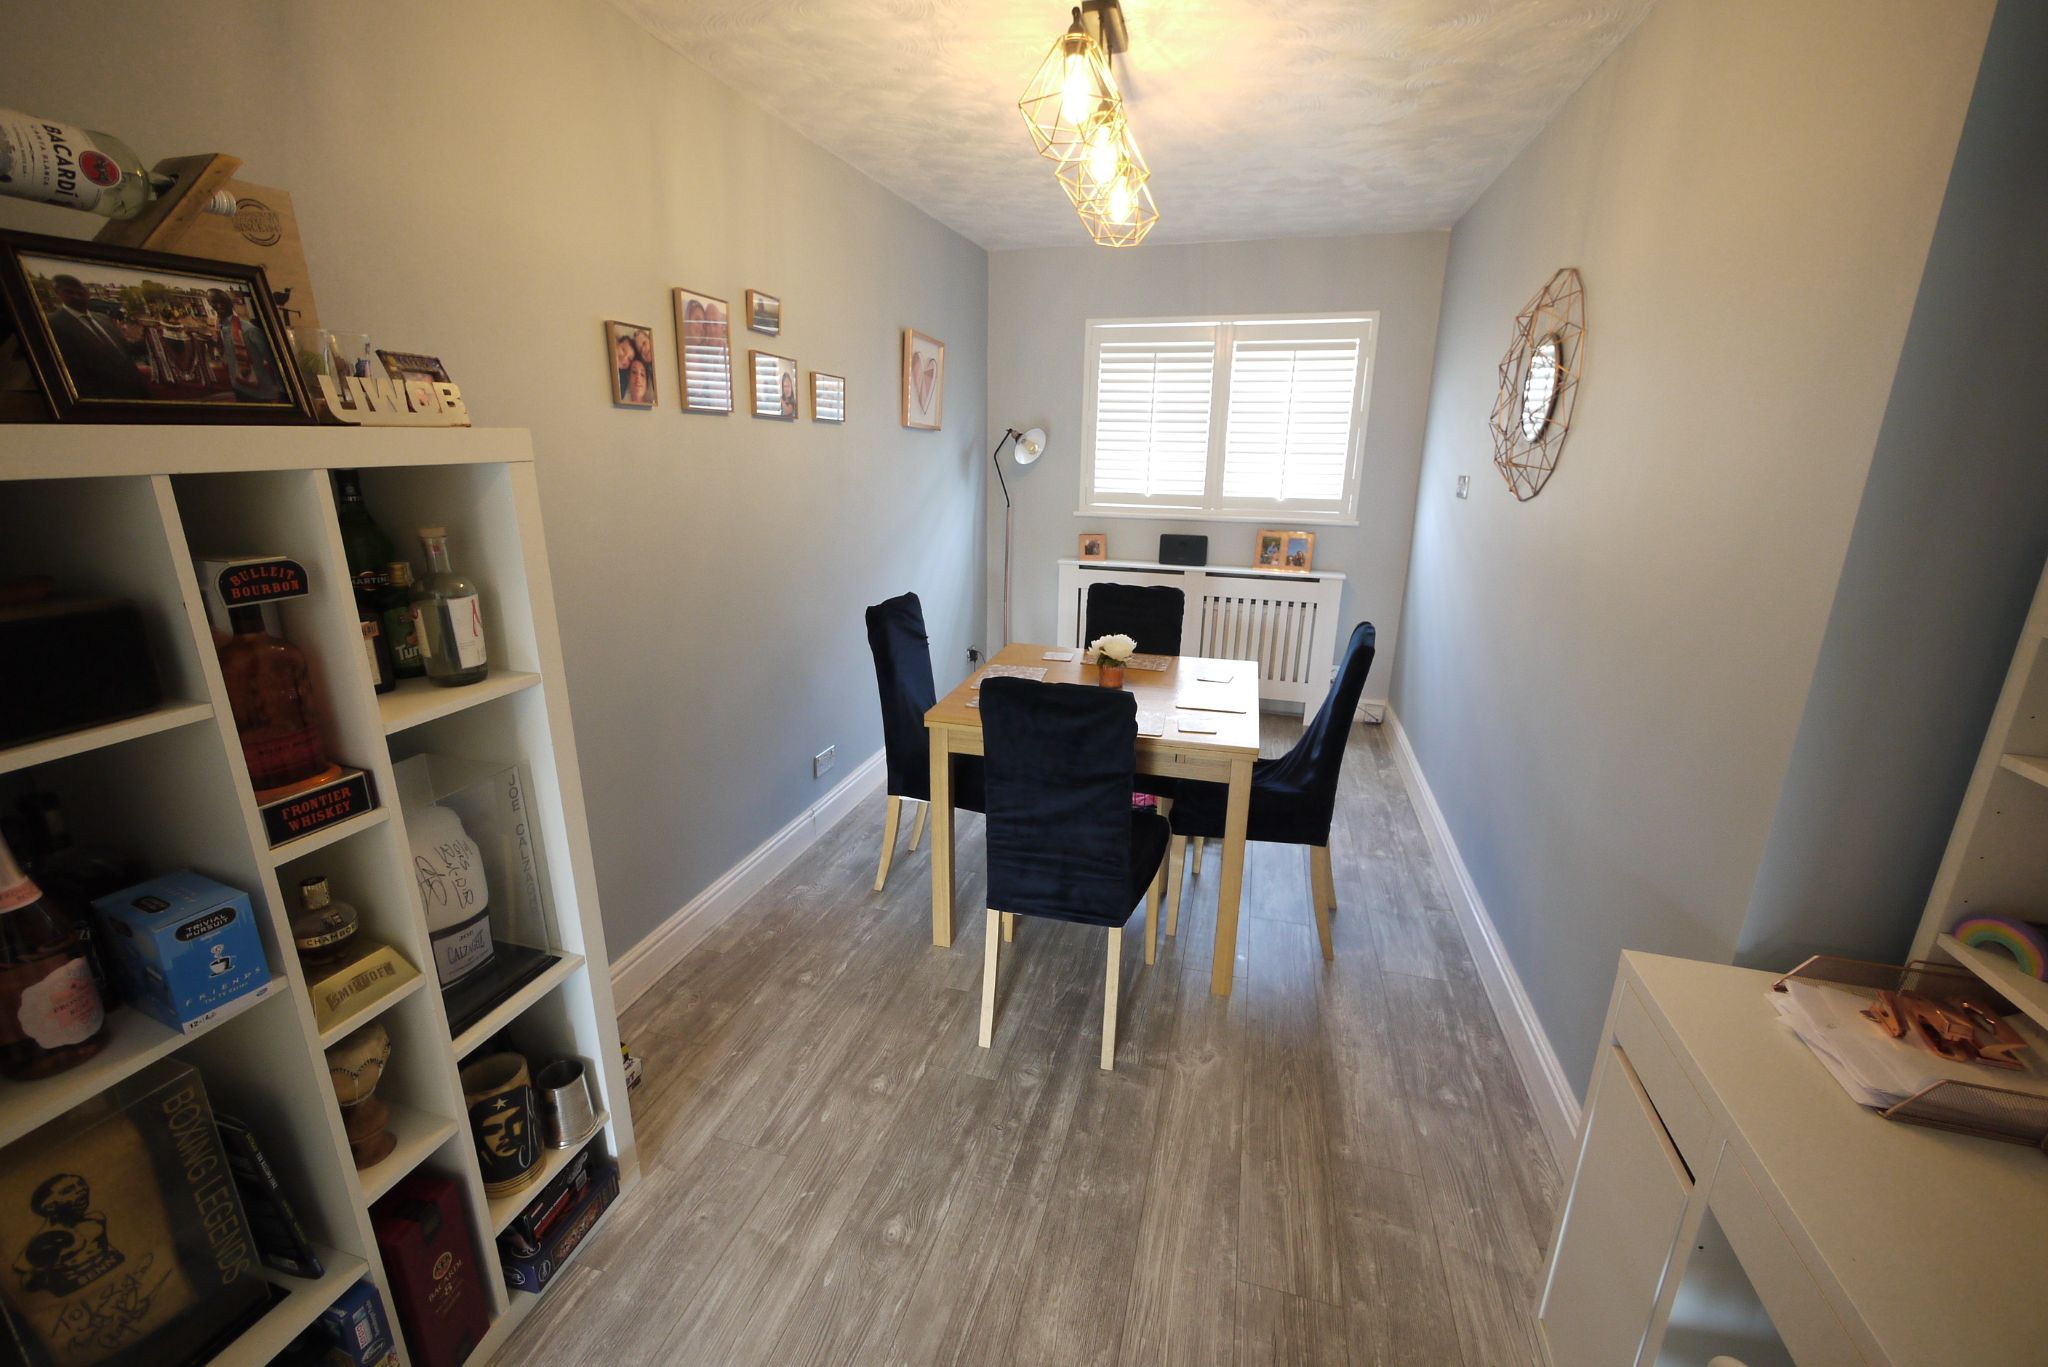 3 bedroom detached bungalow SSTC in Brighouse - Photograph 5.